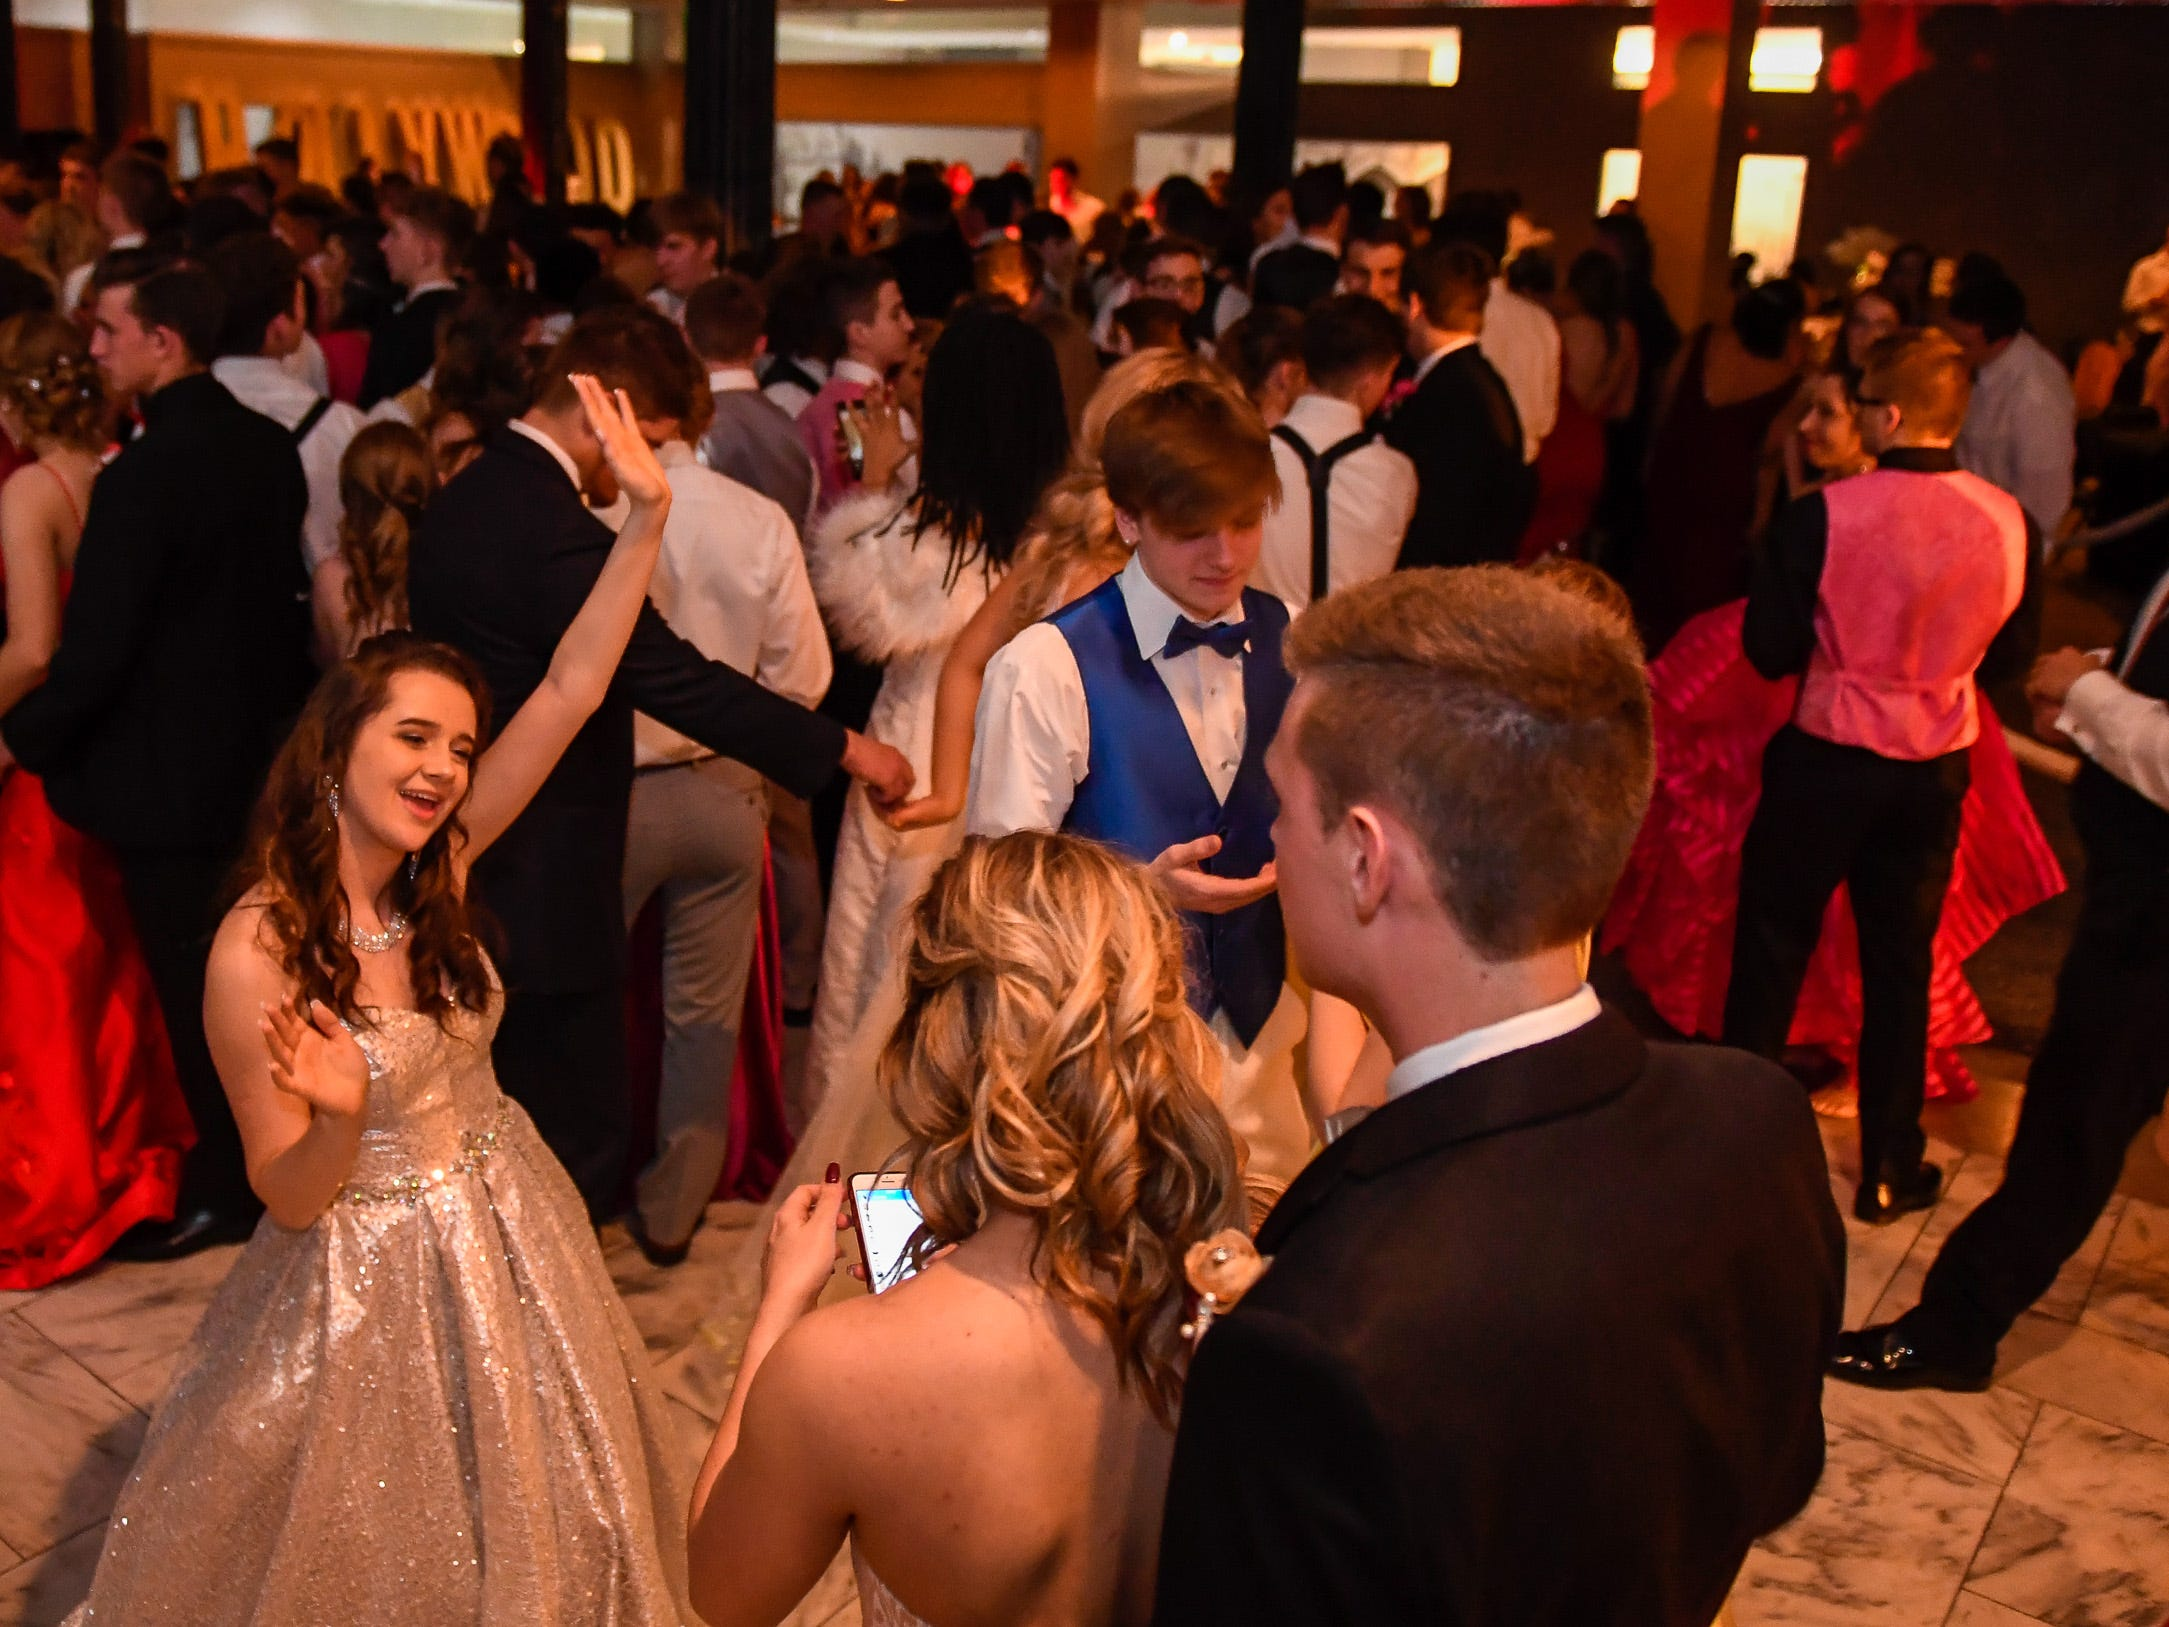 Dancing at the North High School Prom held at the Old Post Office in downtown Evansville Saturday, April 13, 2019.